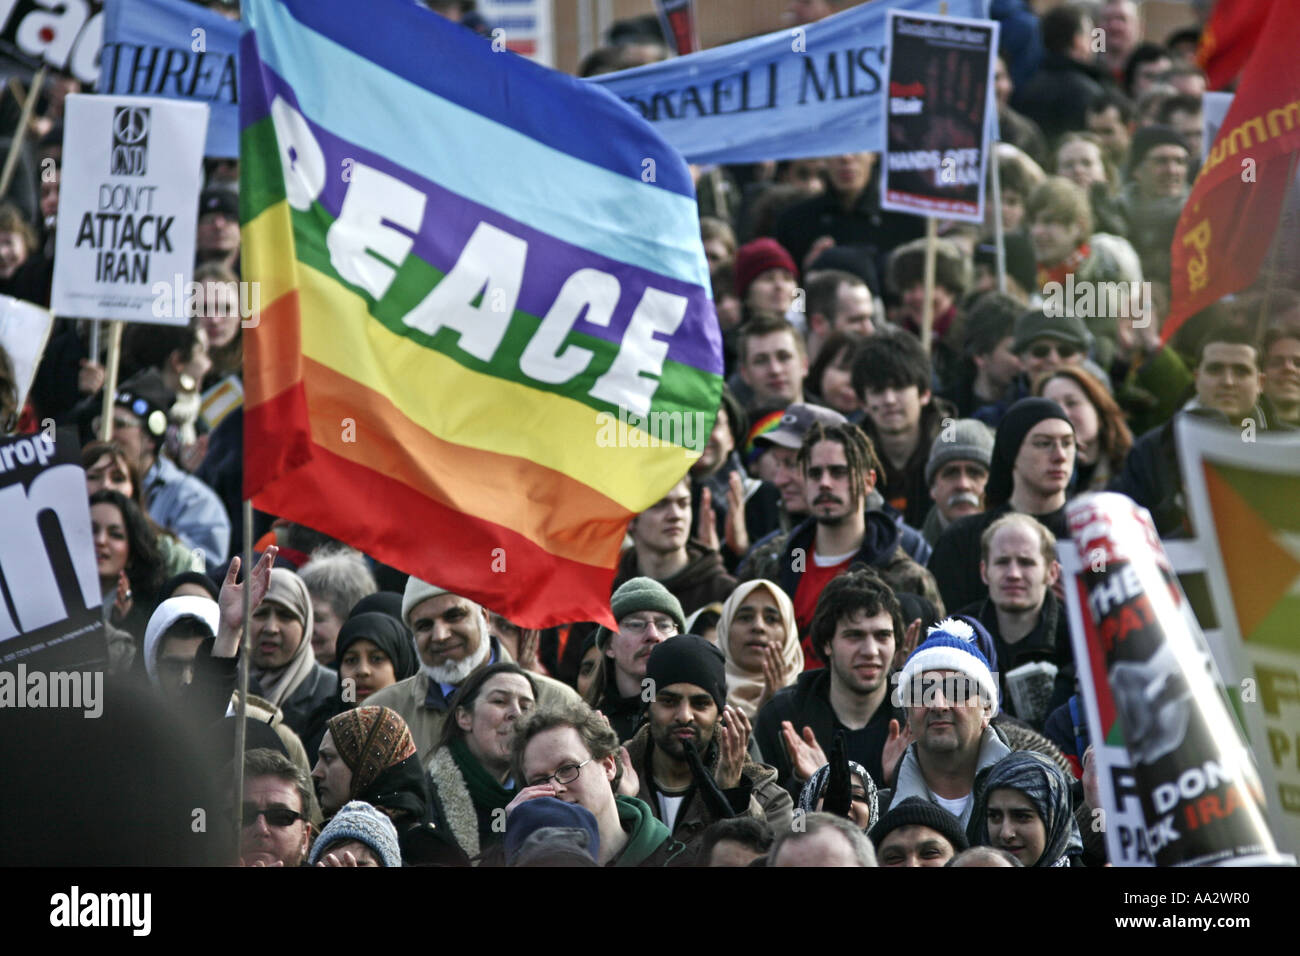 Peace protesters at anti-war demo in London UK - Stock Image